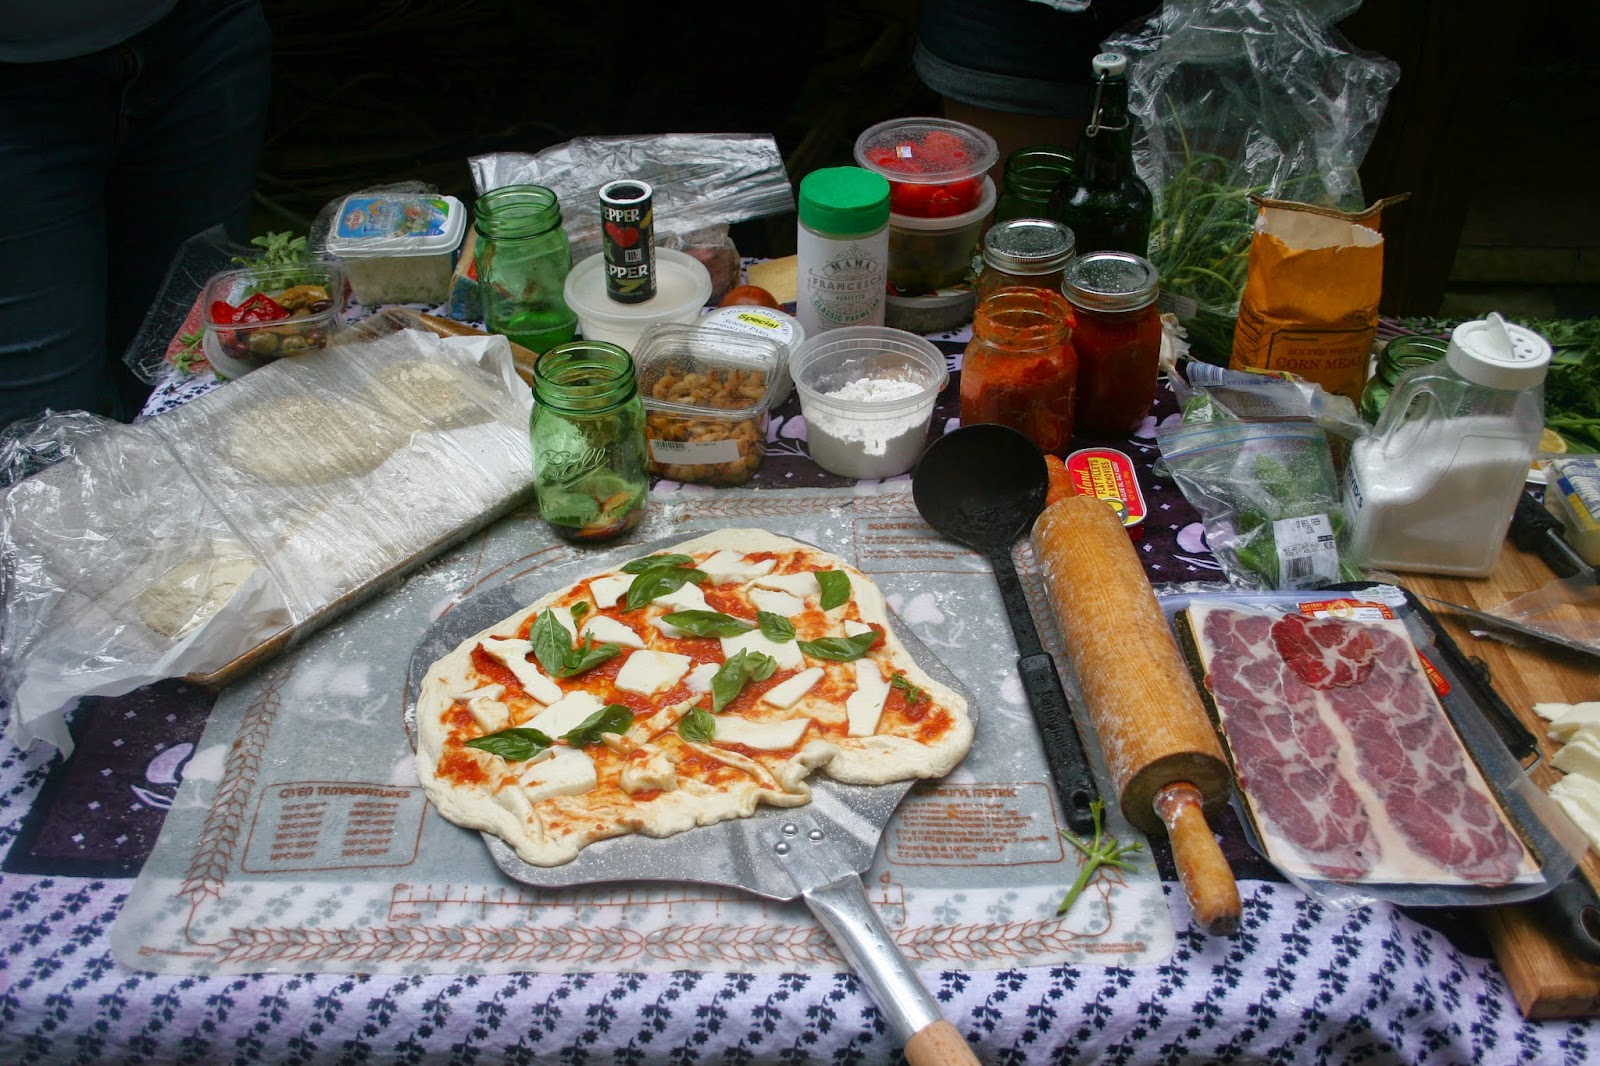 Pizza on peel with ingredients